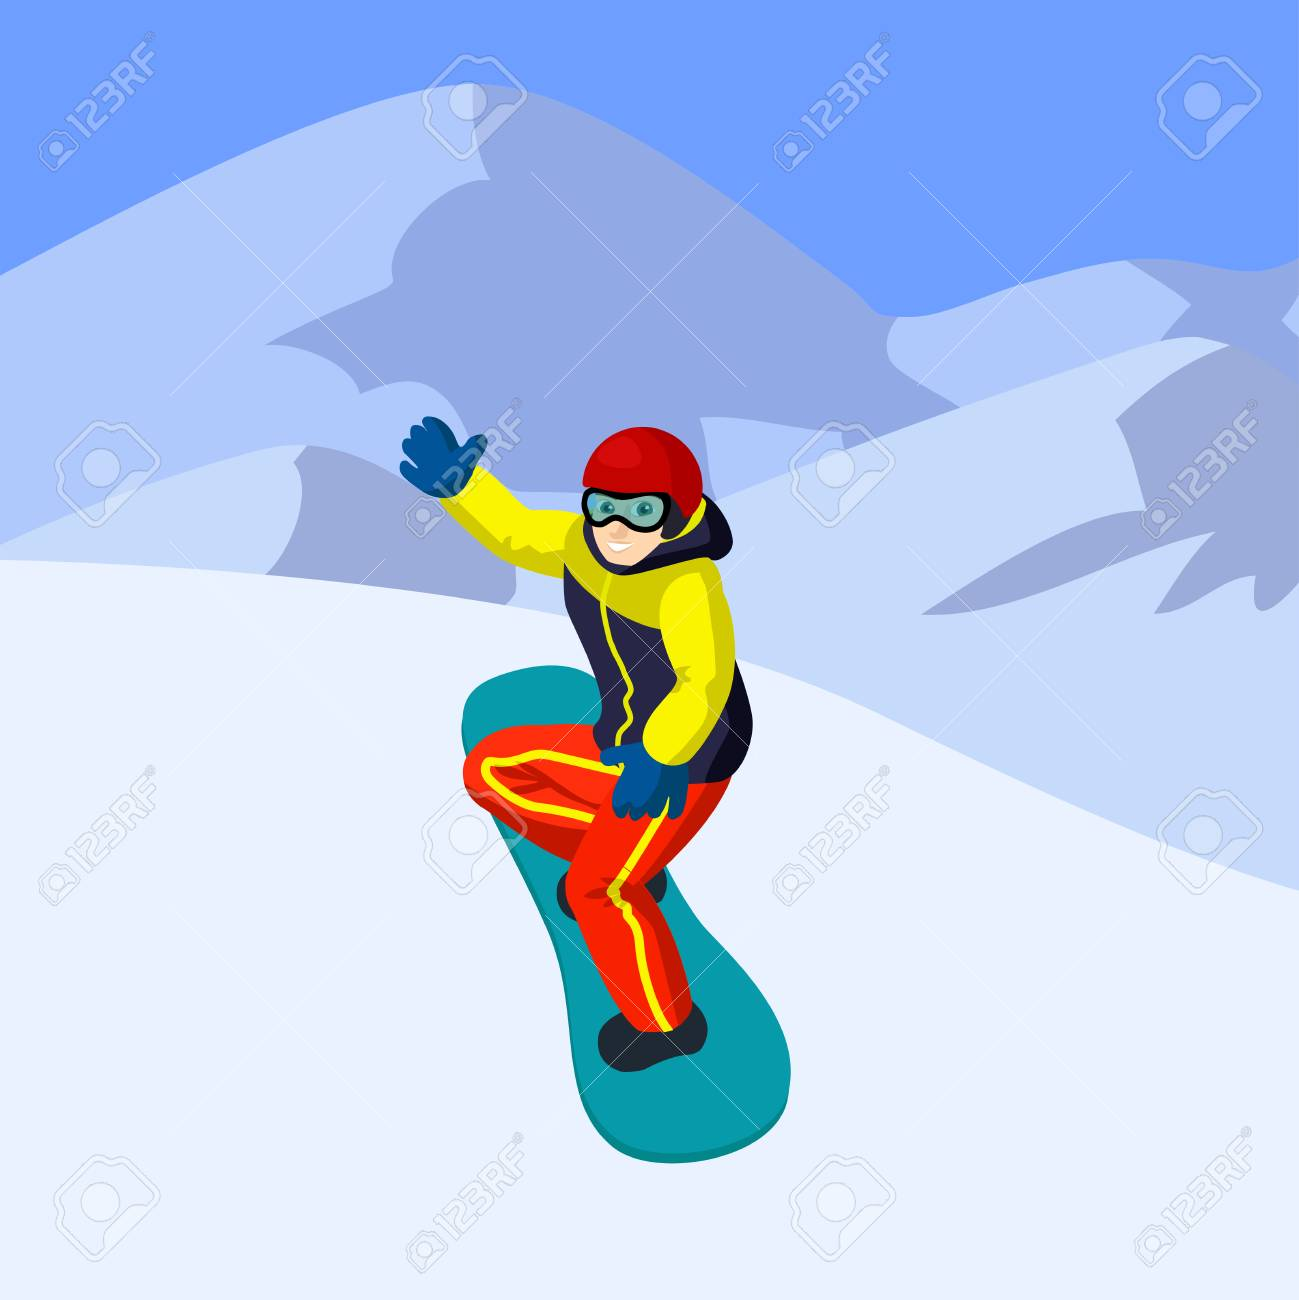 Vector Flat Cartoon Snowboarder In Mountains Cartoon Boy On Stock Photo Picture And Royalty Free Image Image 89663993